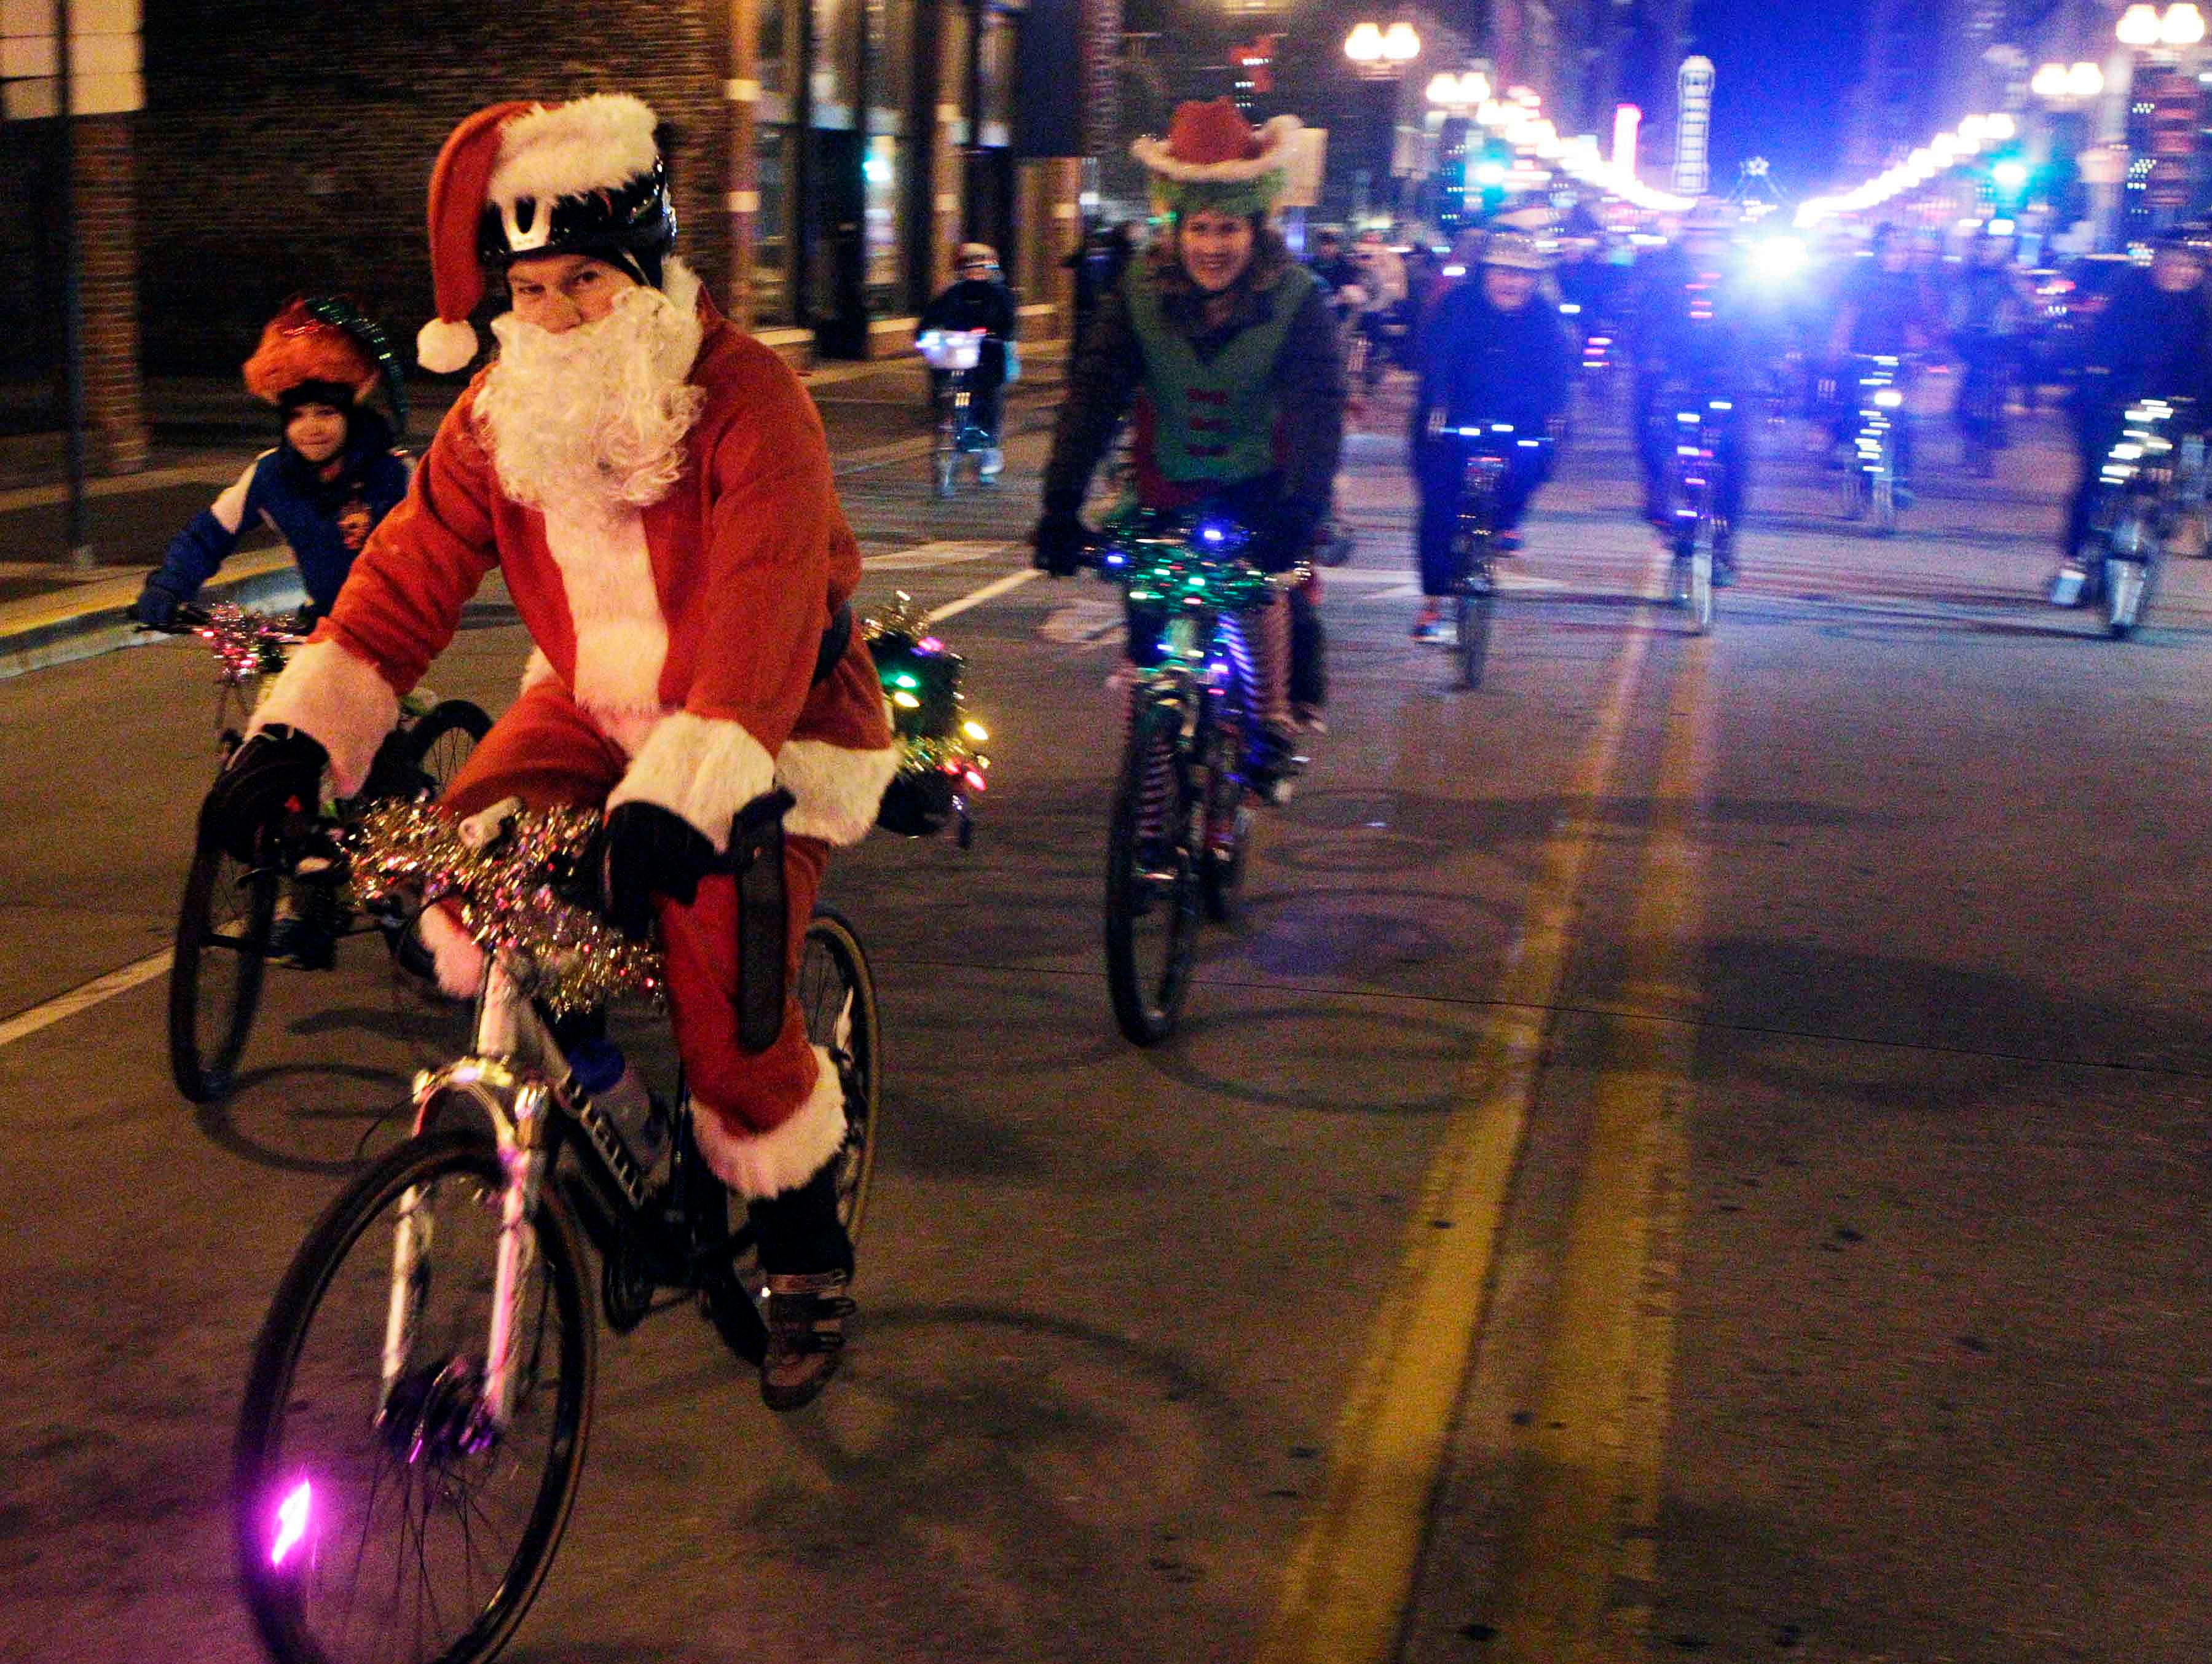 Riders with bikes decorated with Christmas lights and wearing costumes make their way down Gay Street during the Bike Tour de Lights Friday, Dec. 18, 2015, in Knoxville, Tenn.